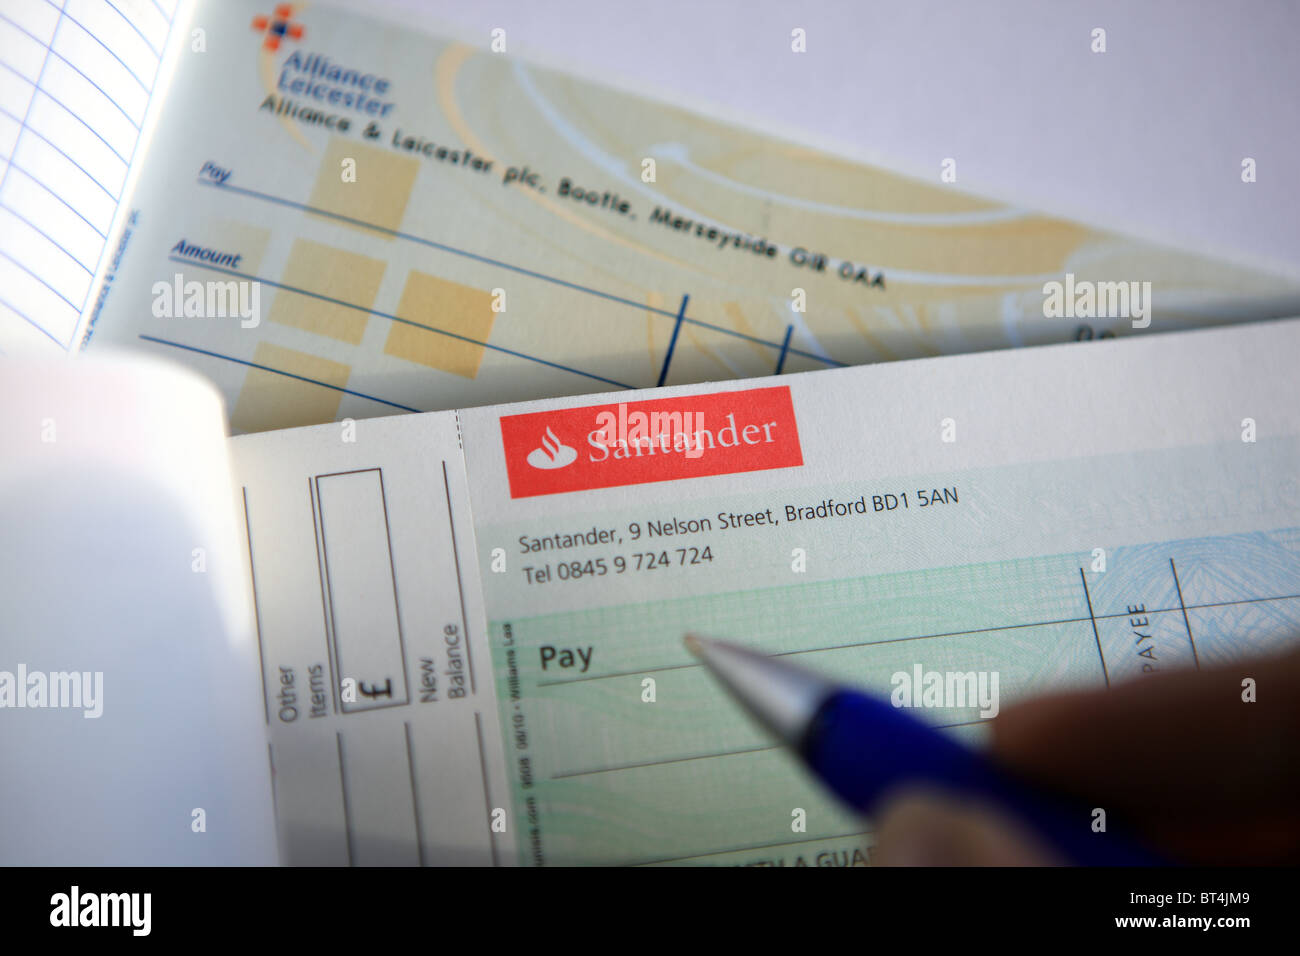 Santander cheque book following the acquisition and rebrading of Alliance & Leicester Building Society - Stock Image